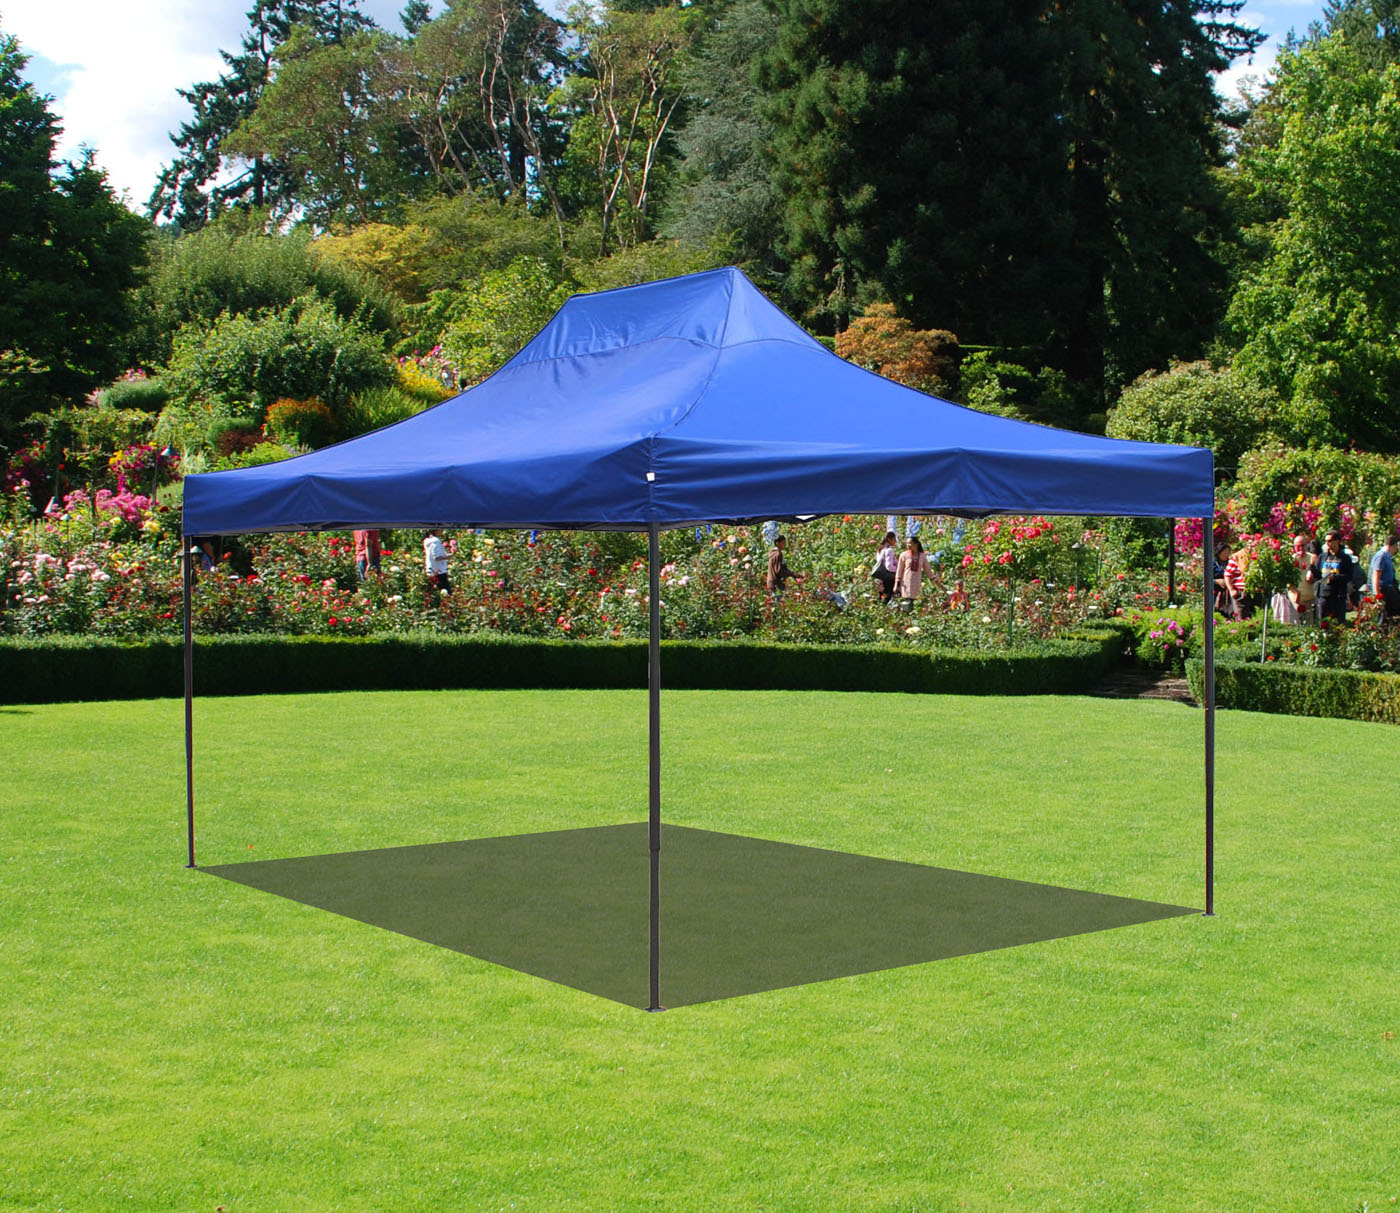 Canopy Tent 10 x 15 Commercial Fair Shelter Car Shelter Wedding Party Easy Pop Up & Canopy Tent 10 x 15 Commercial Fair Shelter Car Shelter Wedding ...